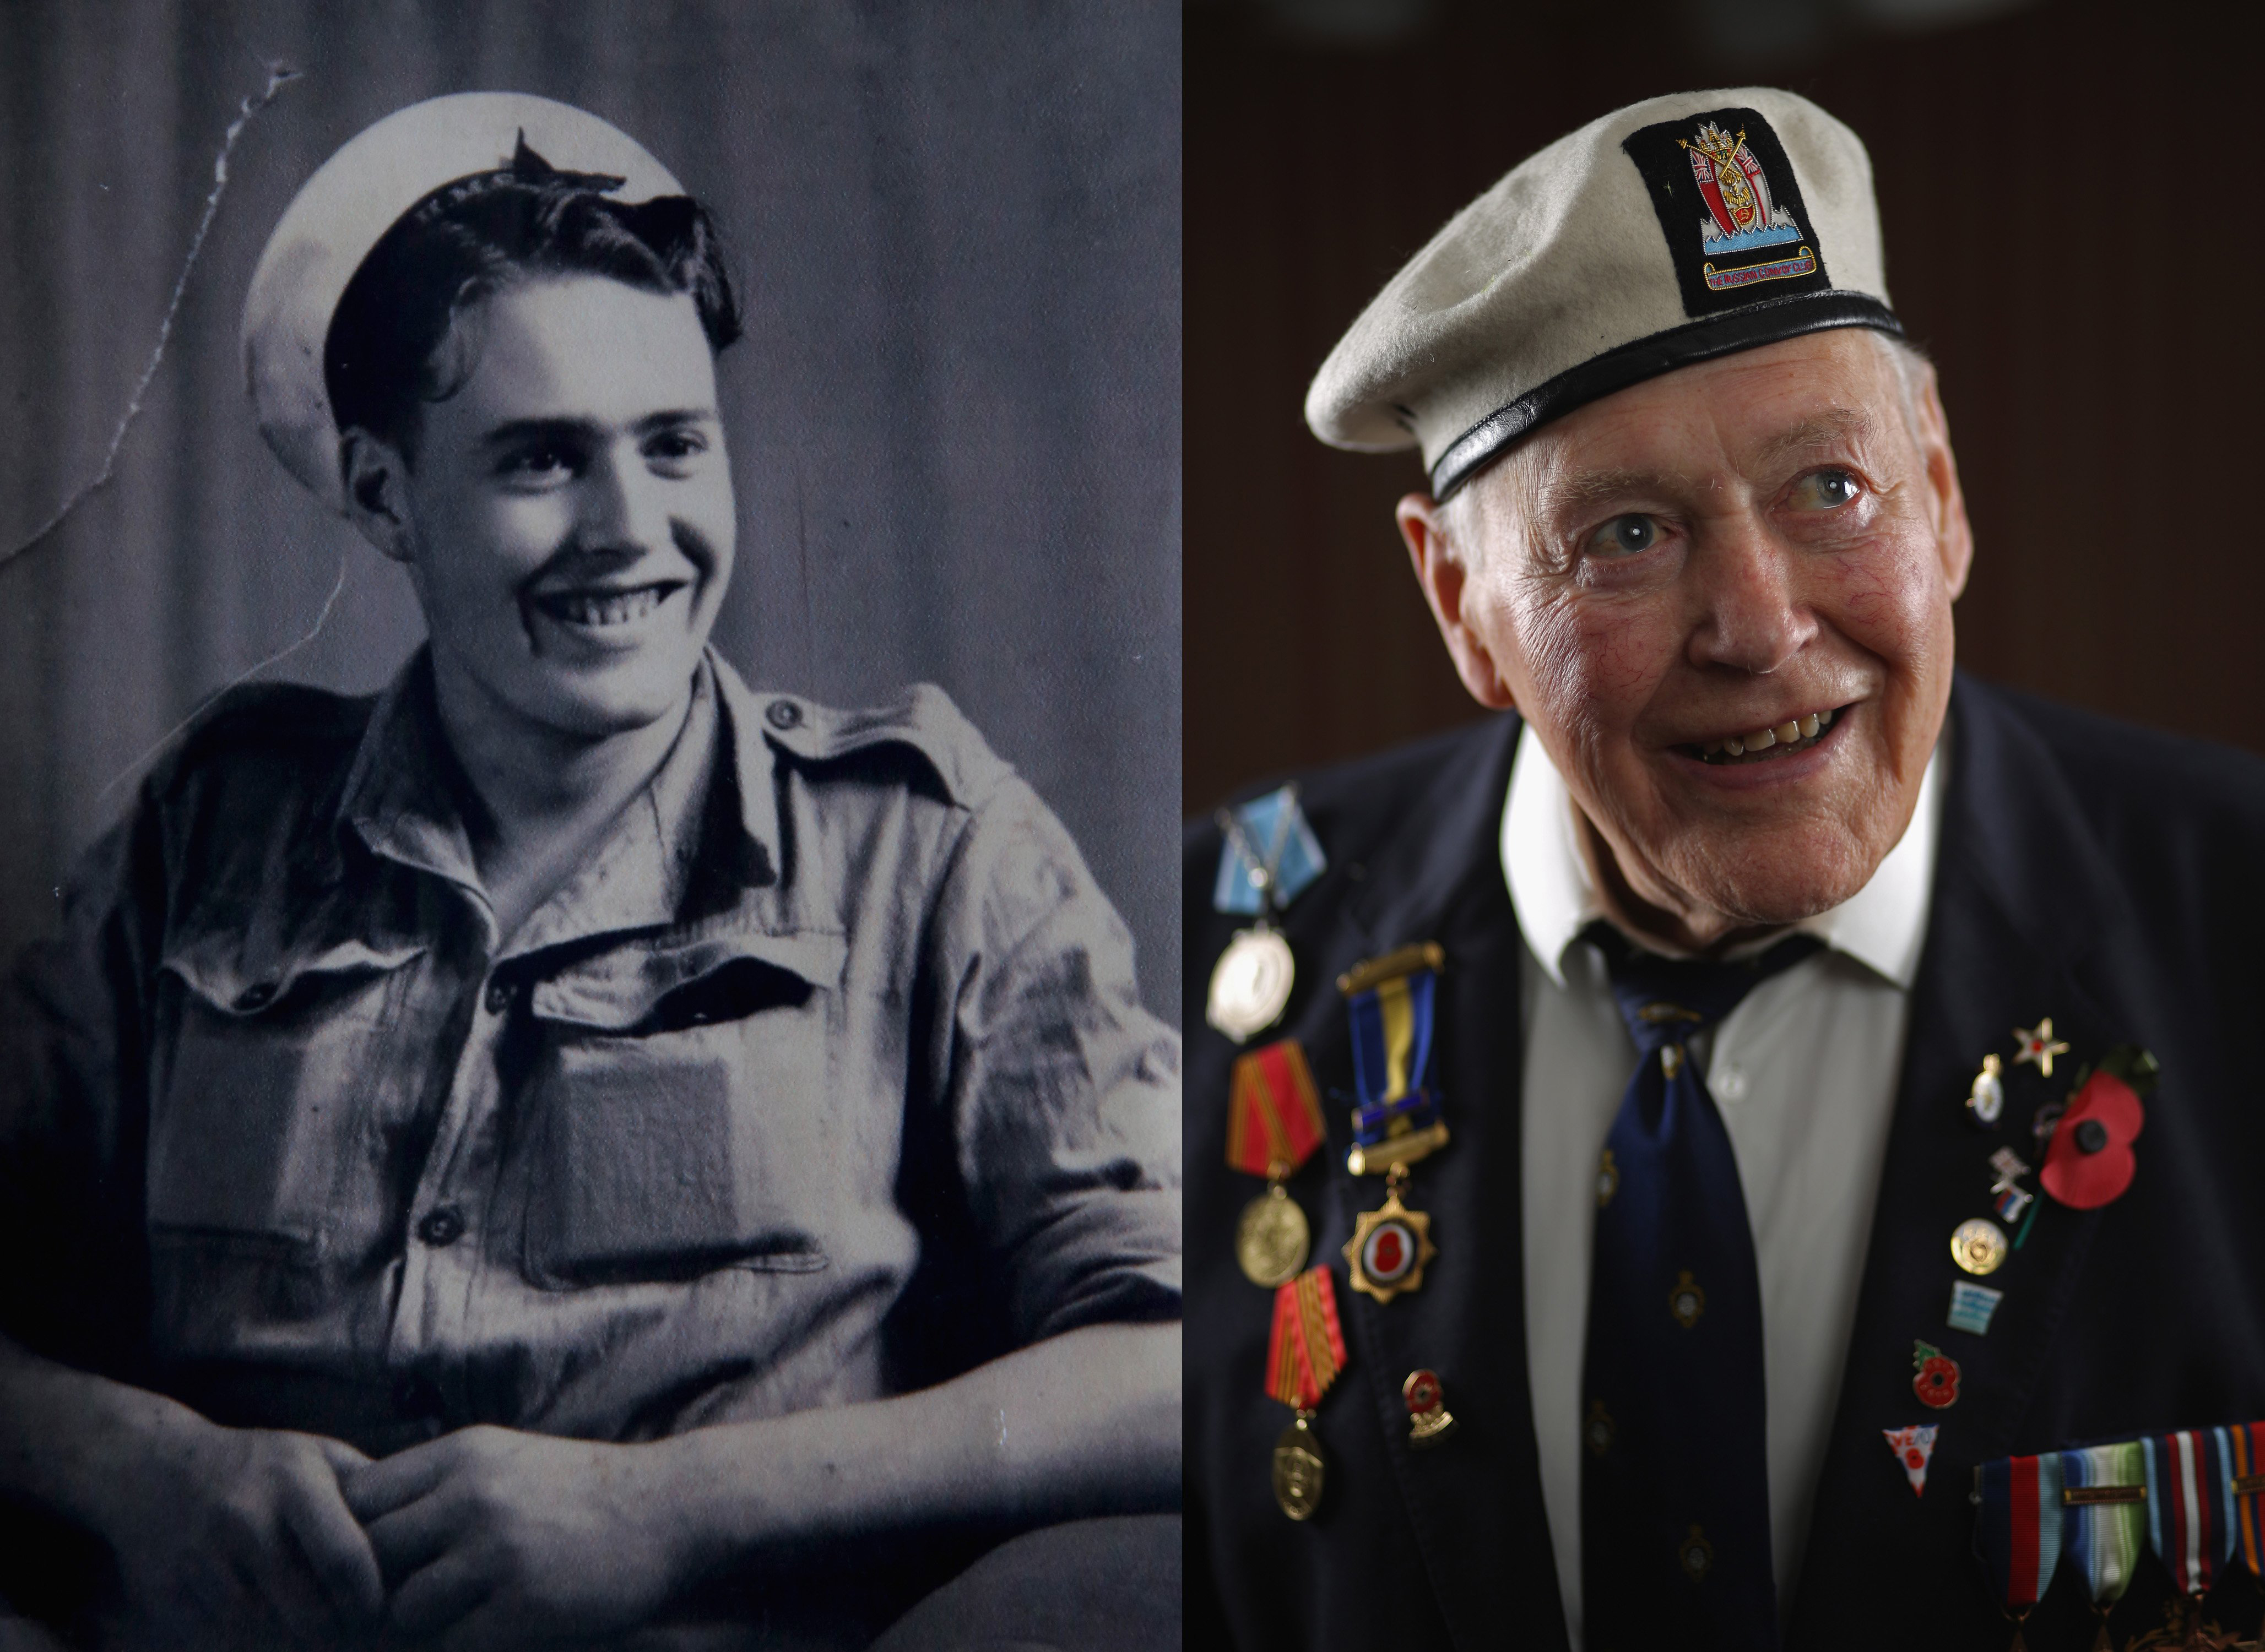 WWII veteran Ken Watson in Japan when he was 20 and at his home, age 89, on Aug. 6, 2015 in Kingston Upon Thames, England.